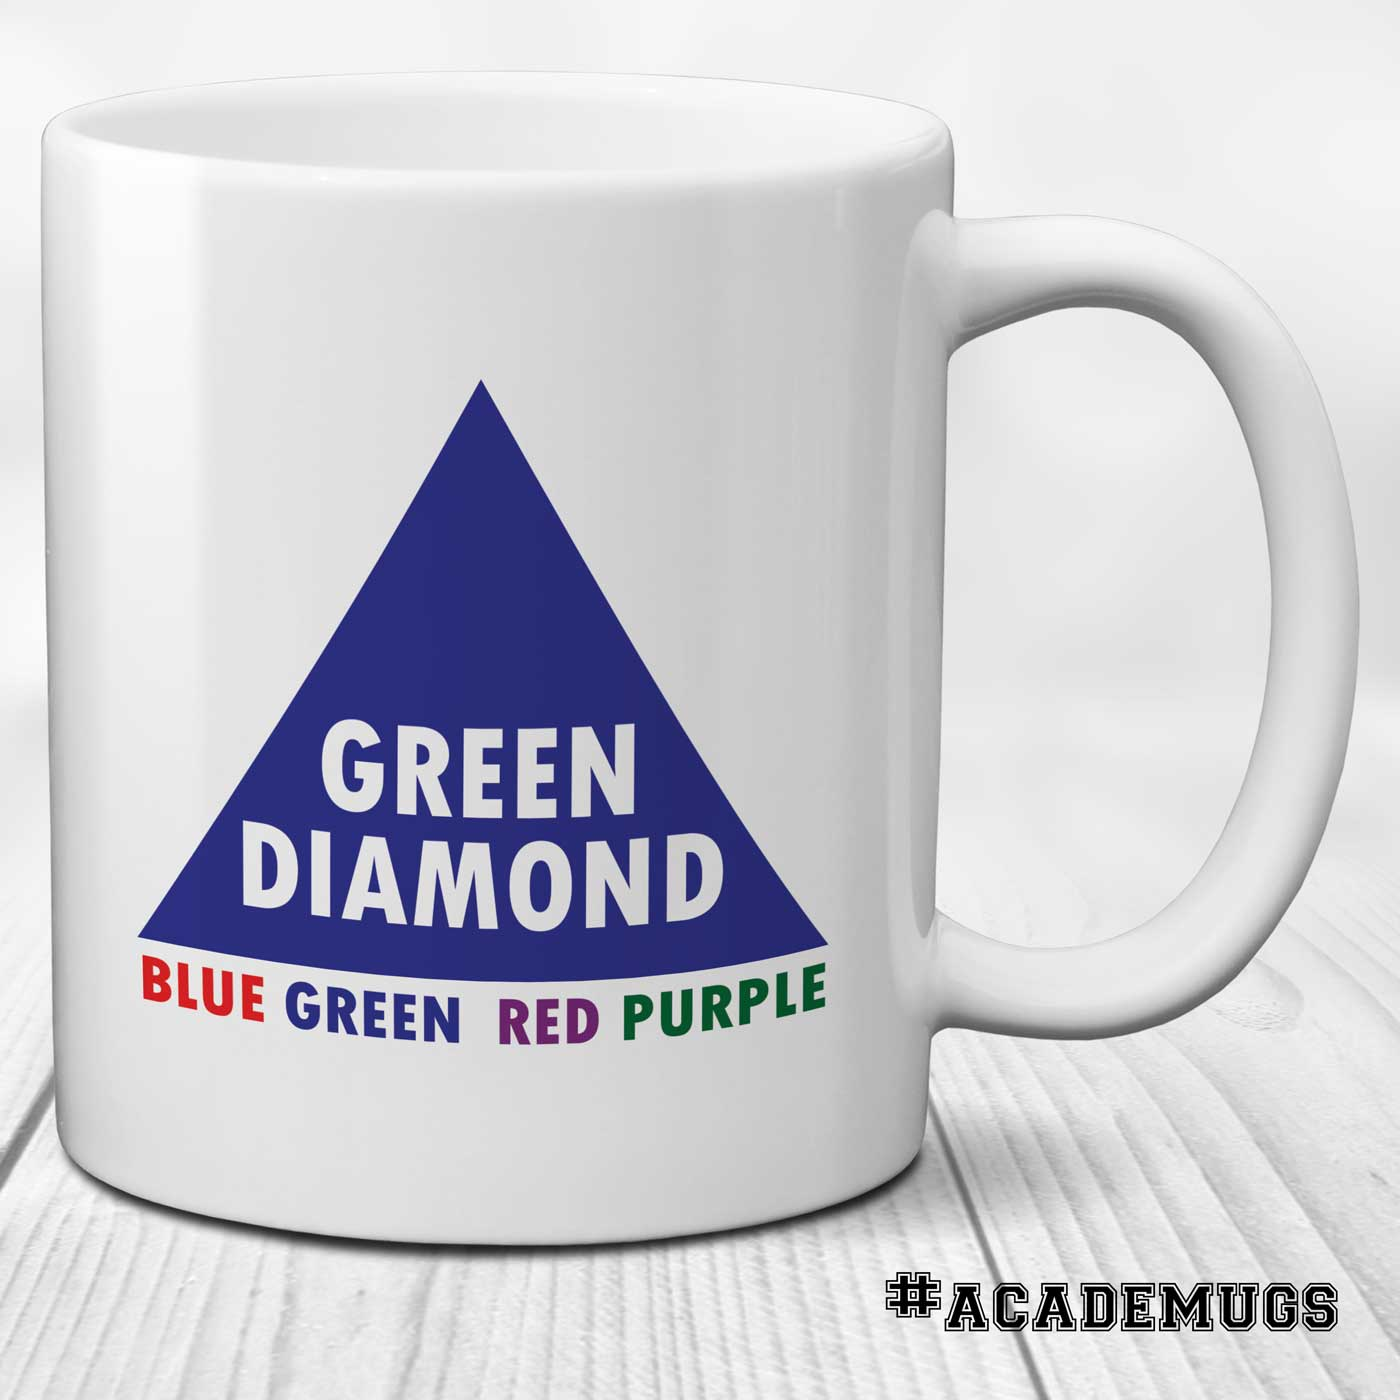 Stroop Effect Mug: Green Diamond